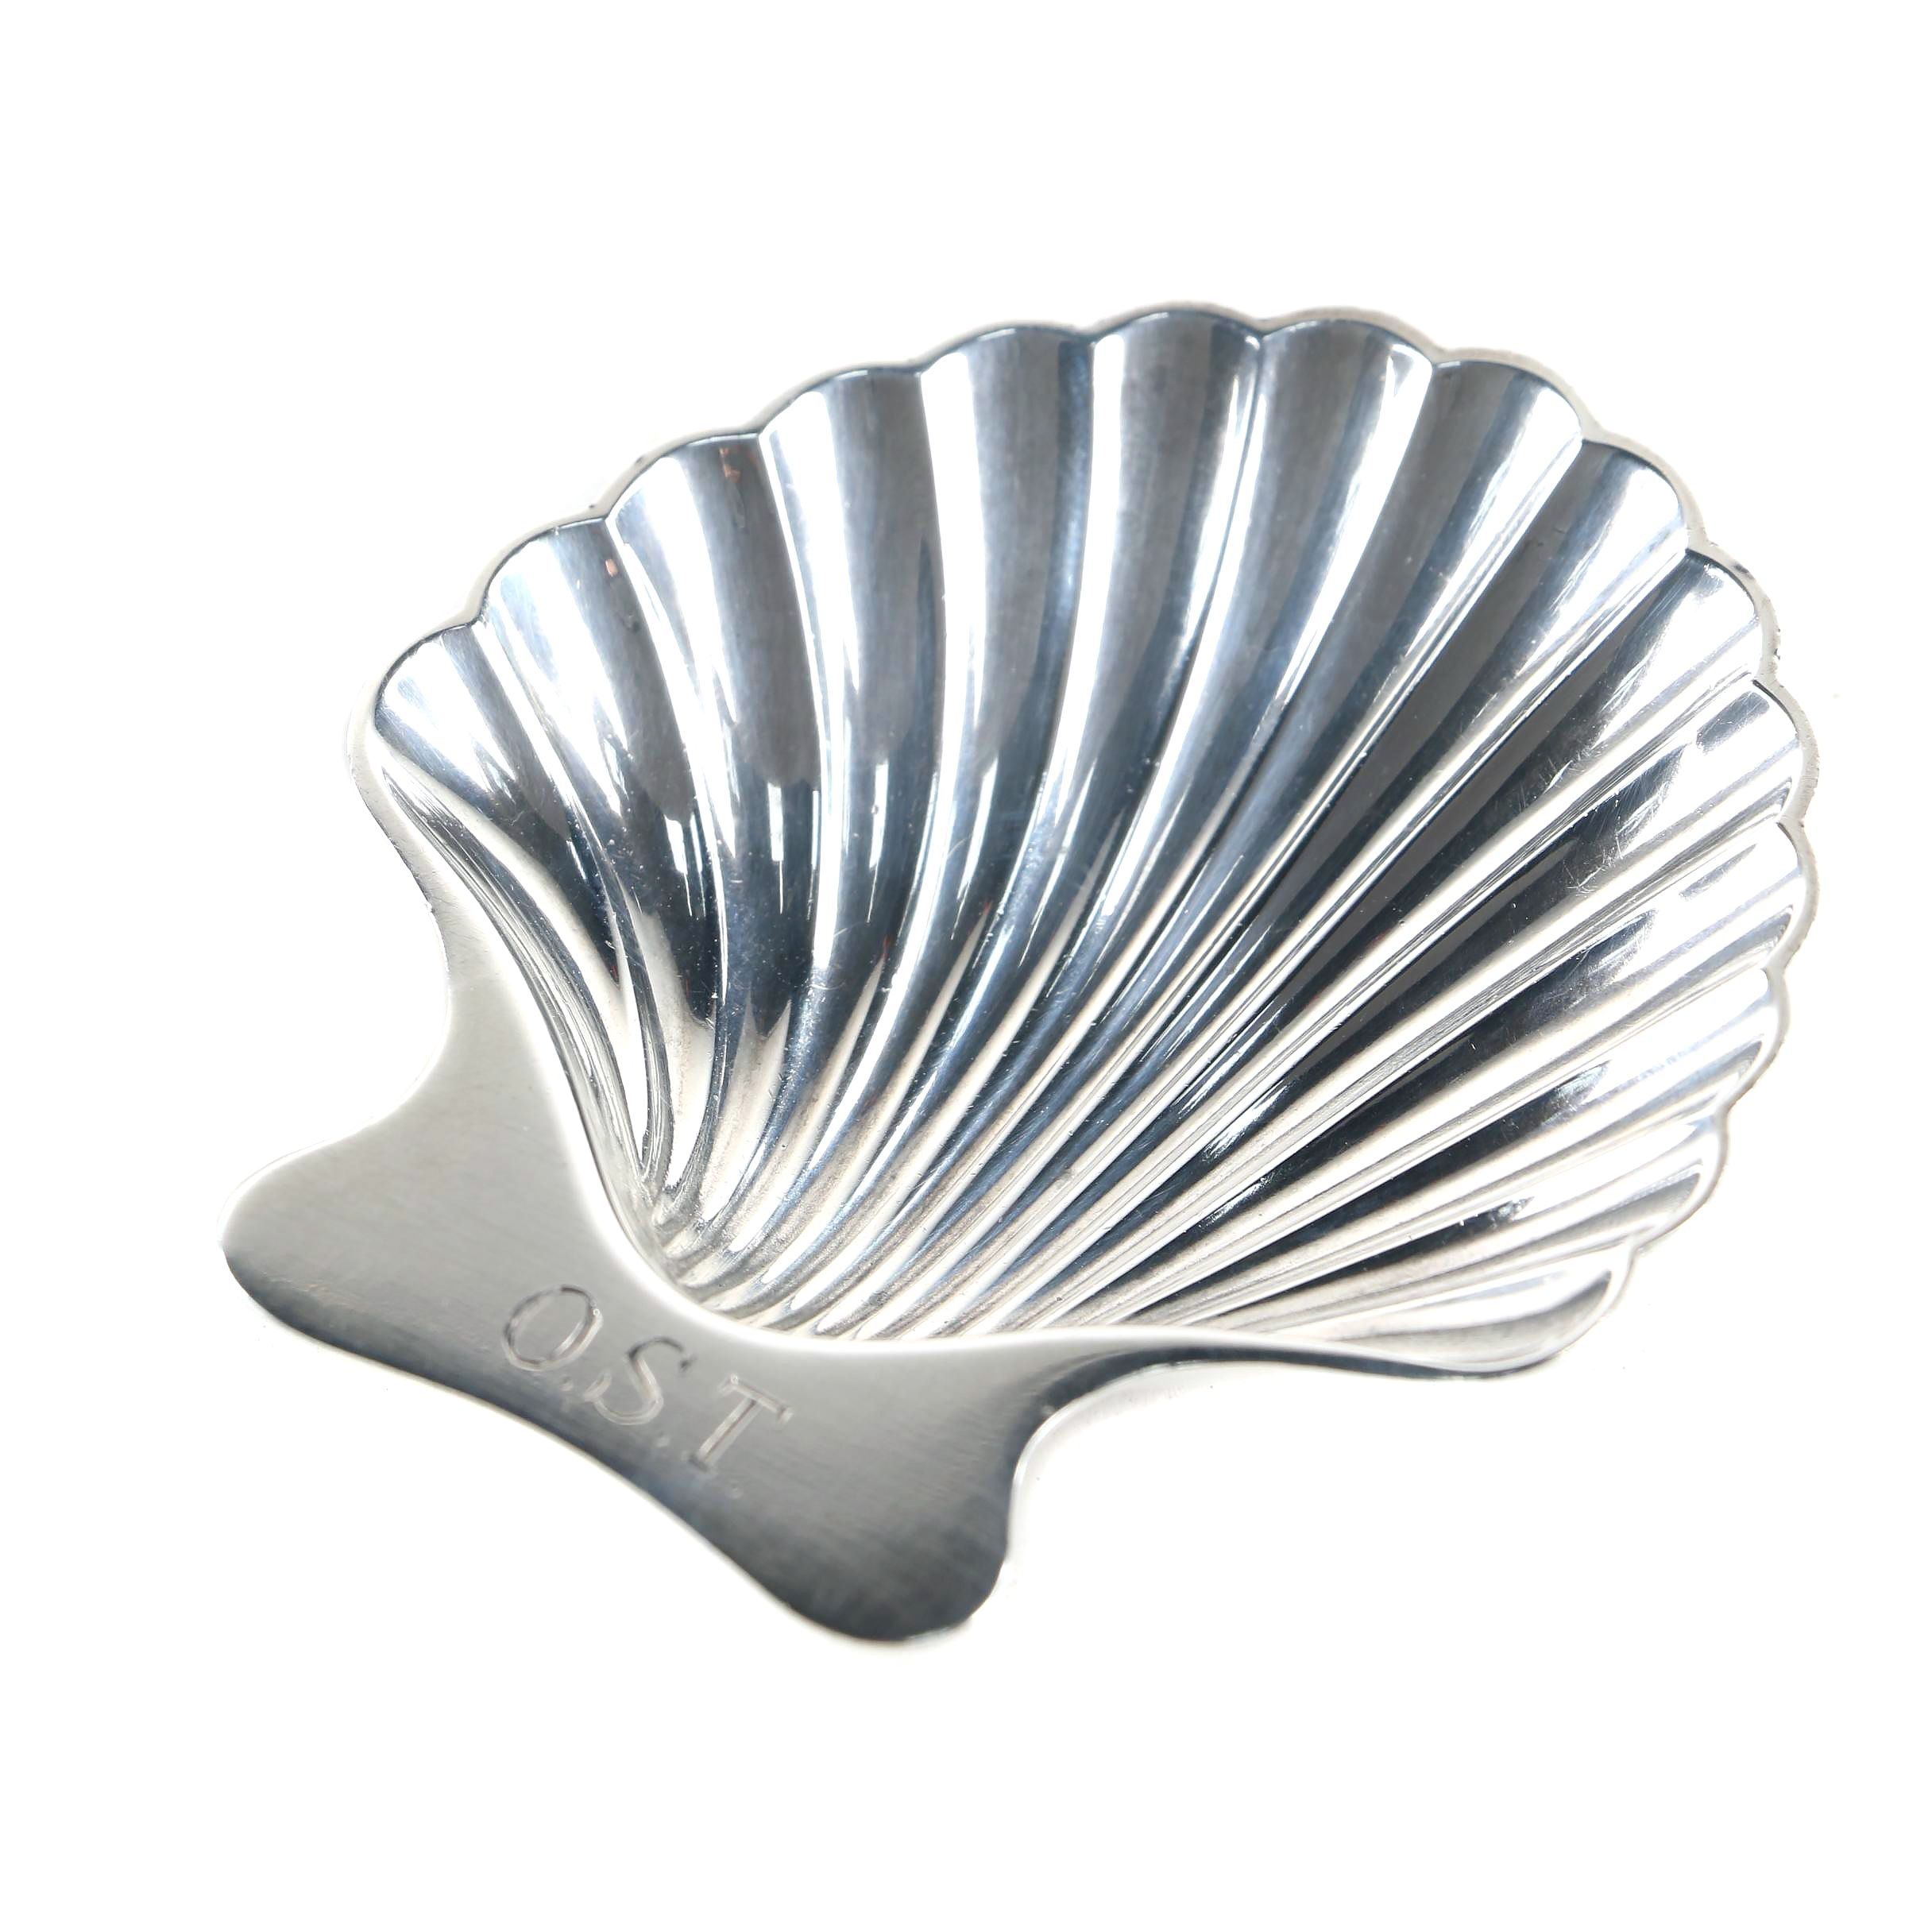 Tiffany & Co. Sterling Silver Scallop Shell Nut Dish